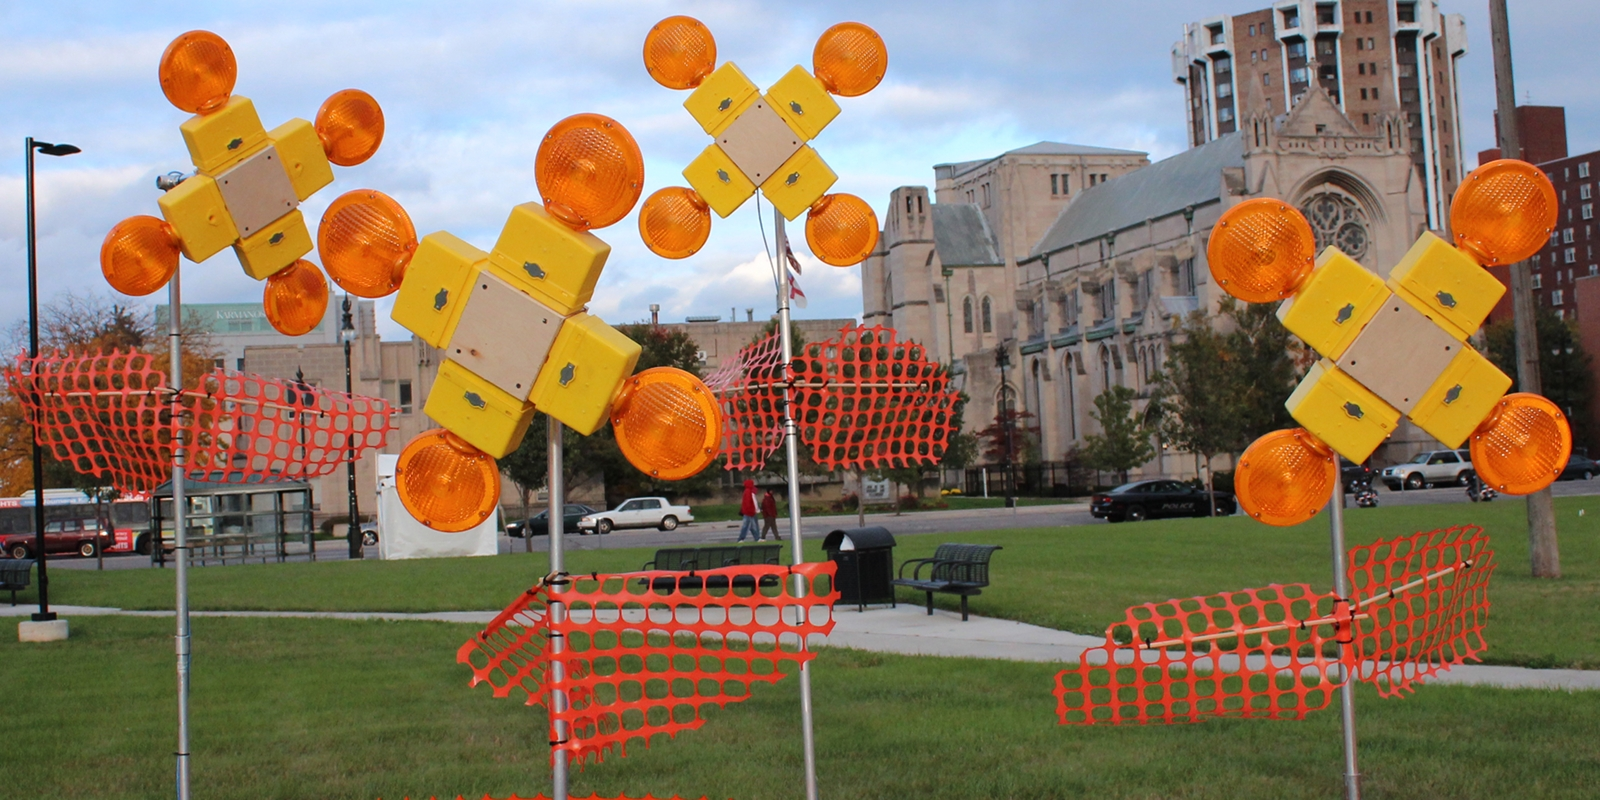 Construction Warning Lights Hacked into Flowers